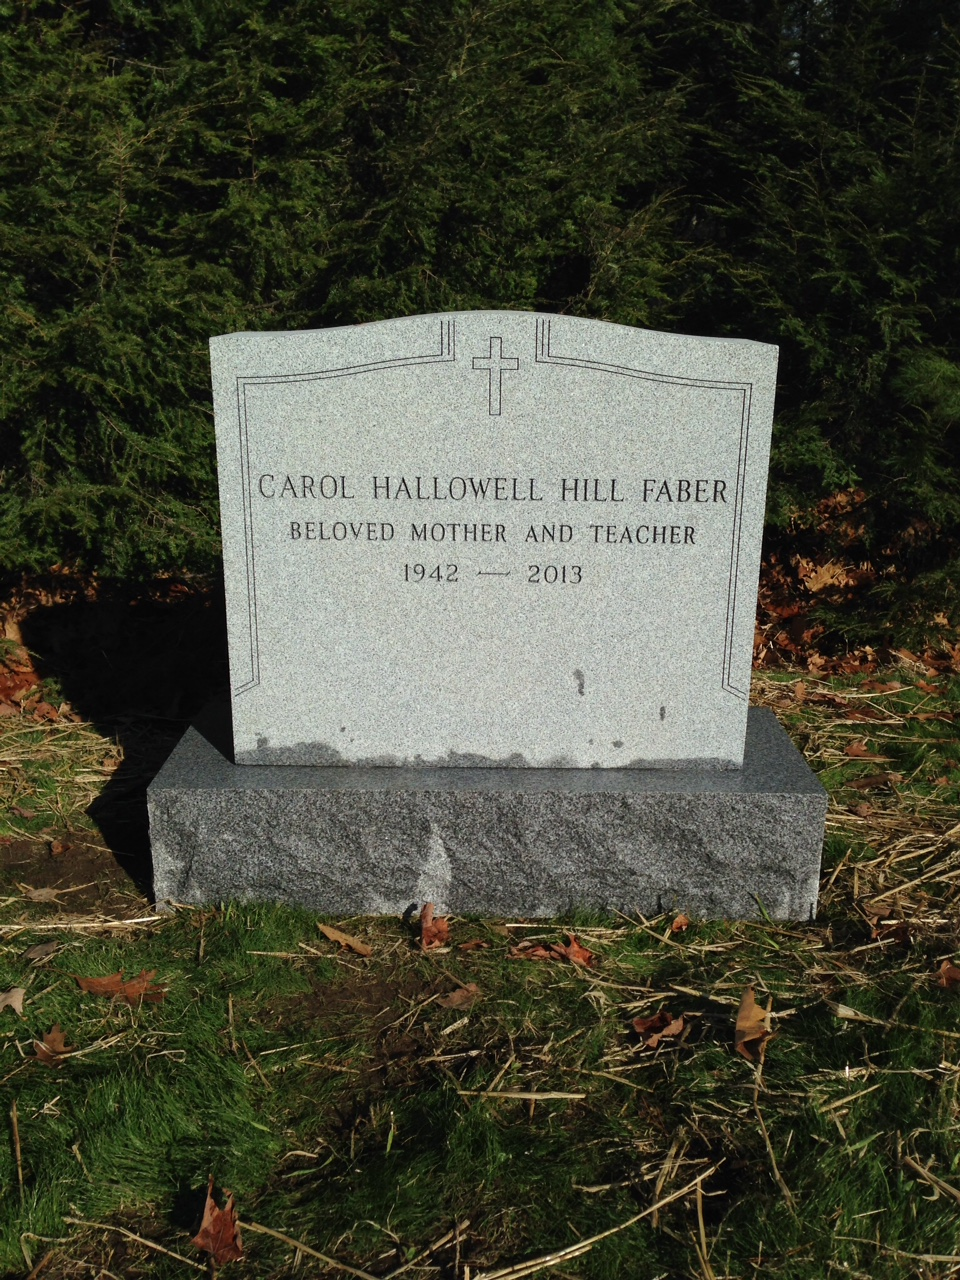 HILL-FABER front.JPG